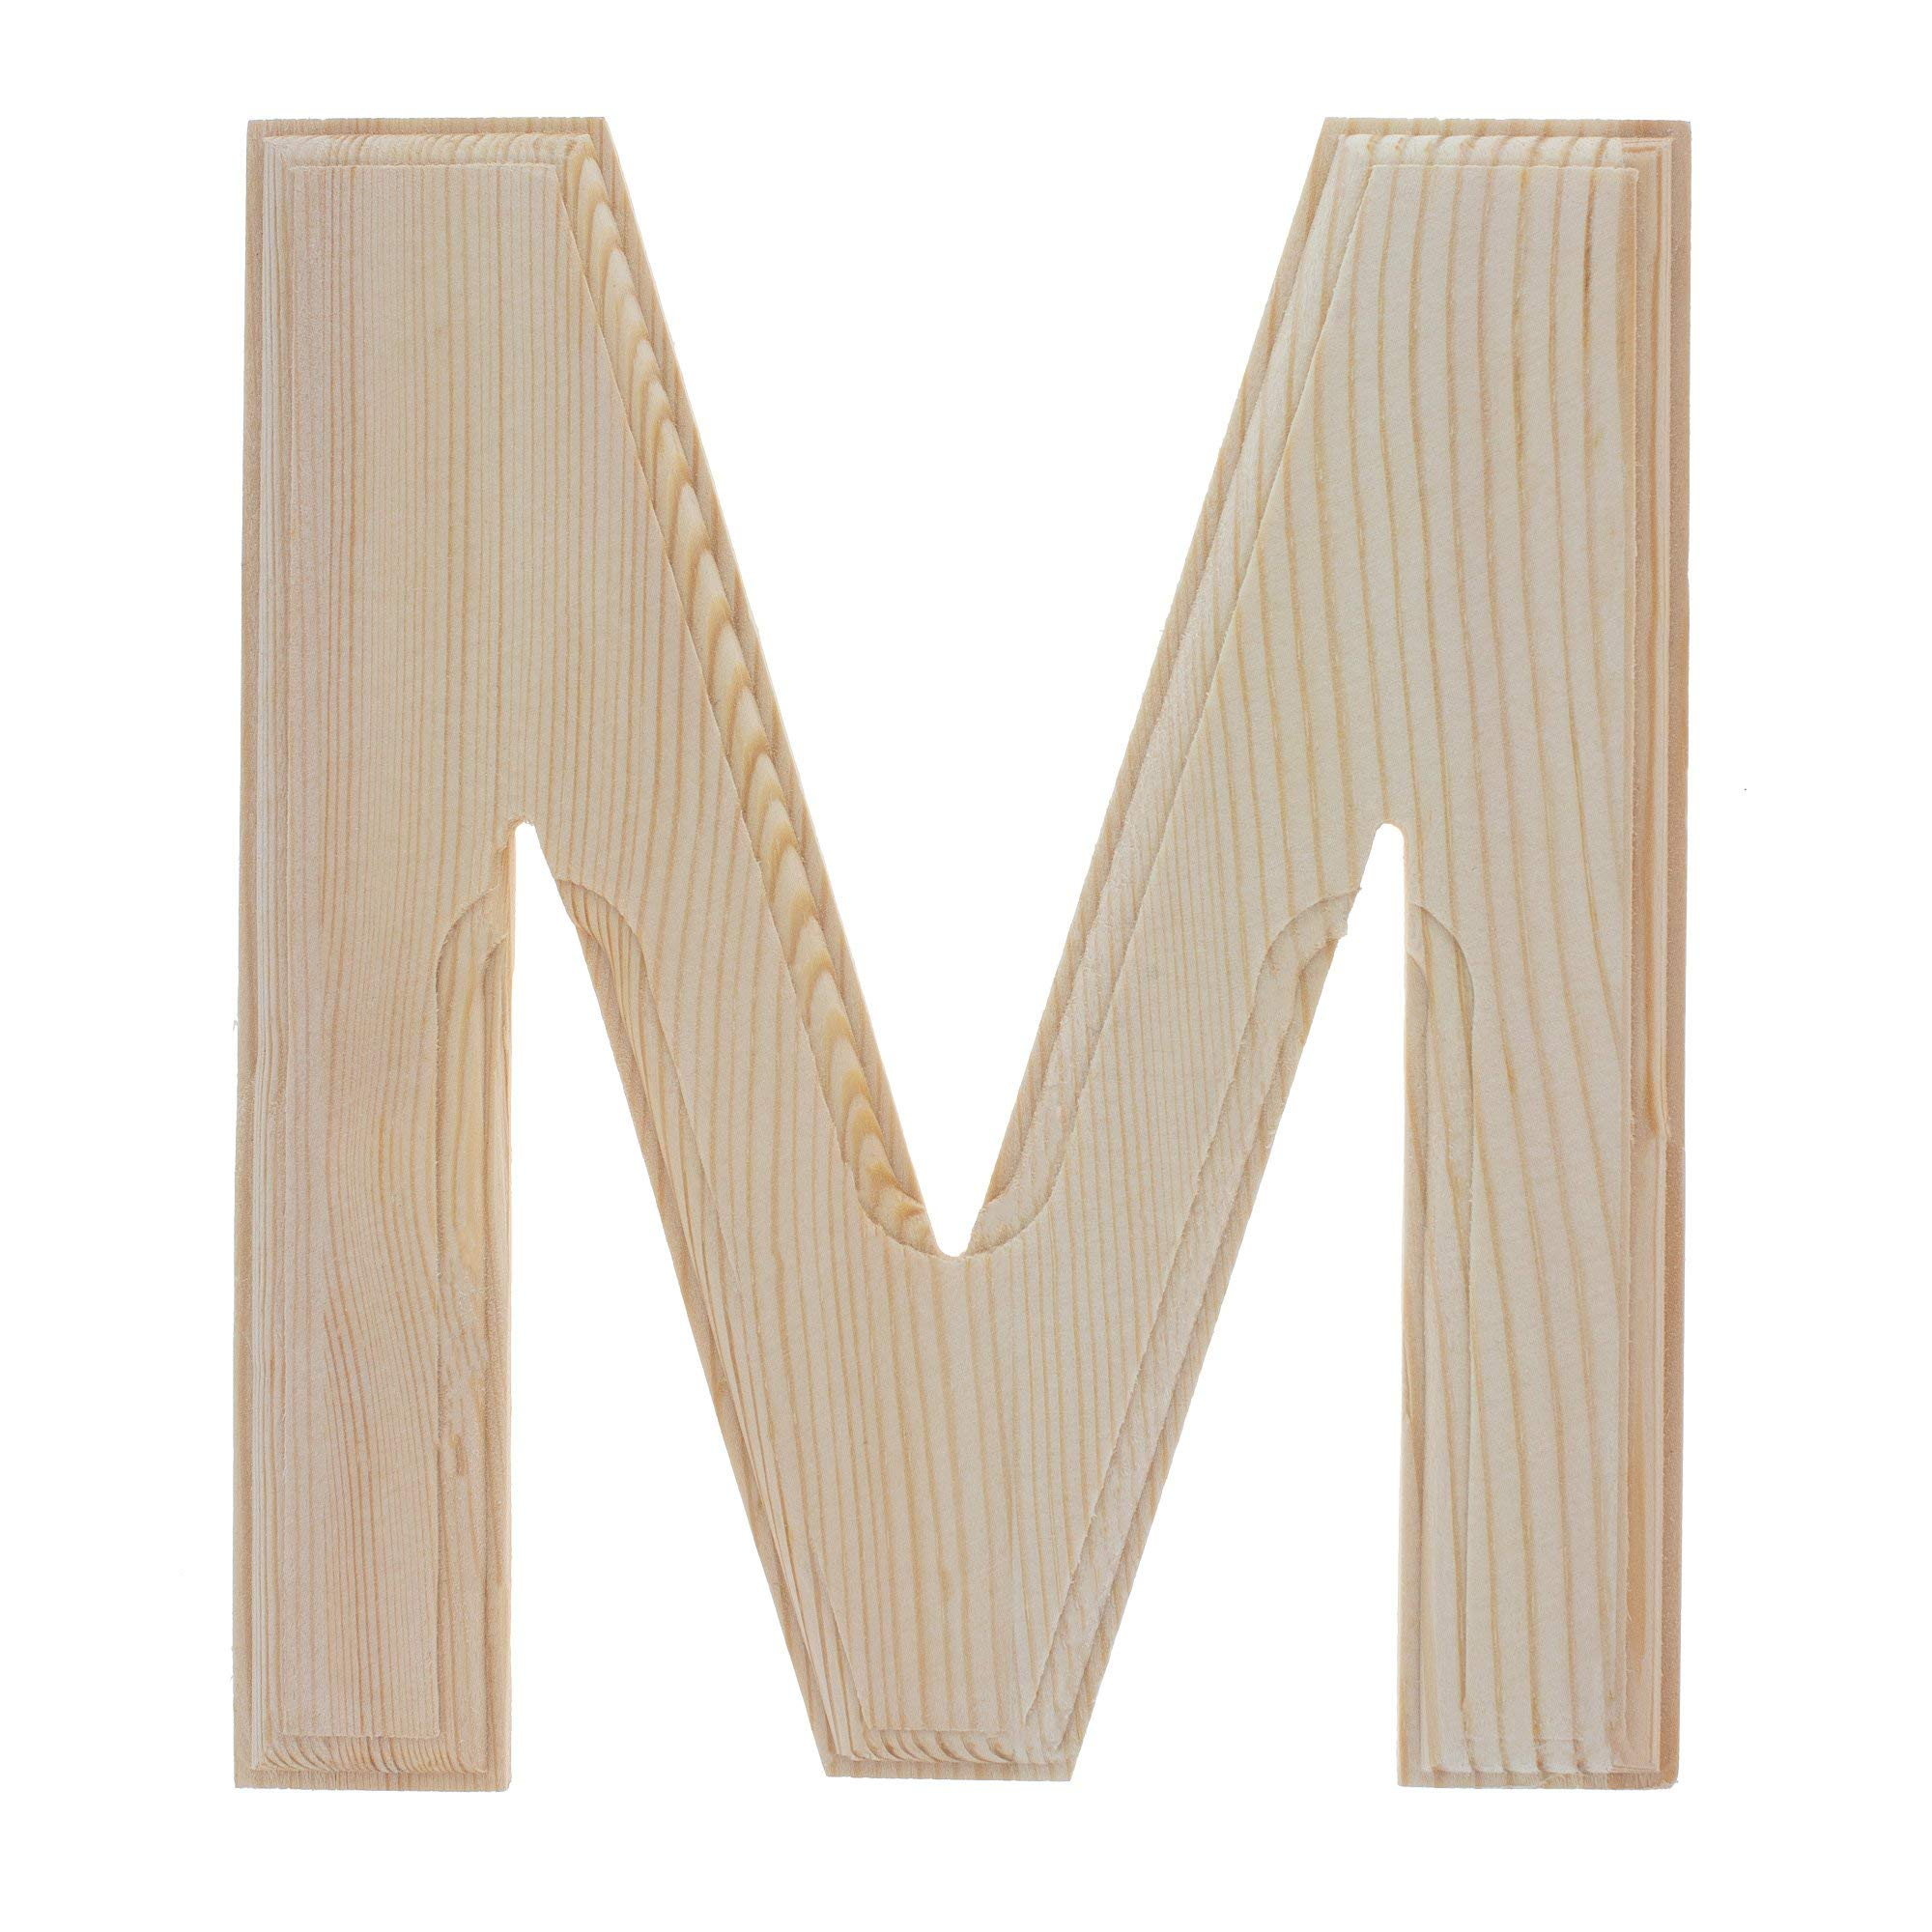 BestPysanky Unfinished Wooden Letter M (6.25 Inches)